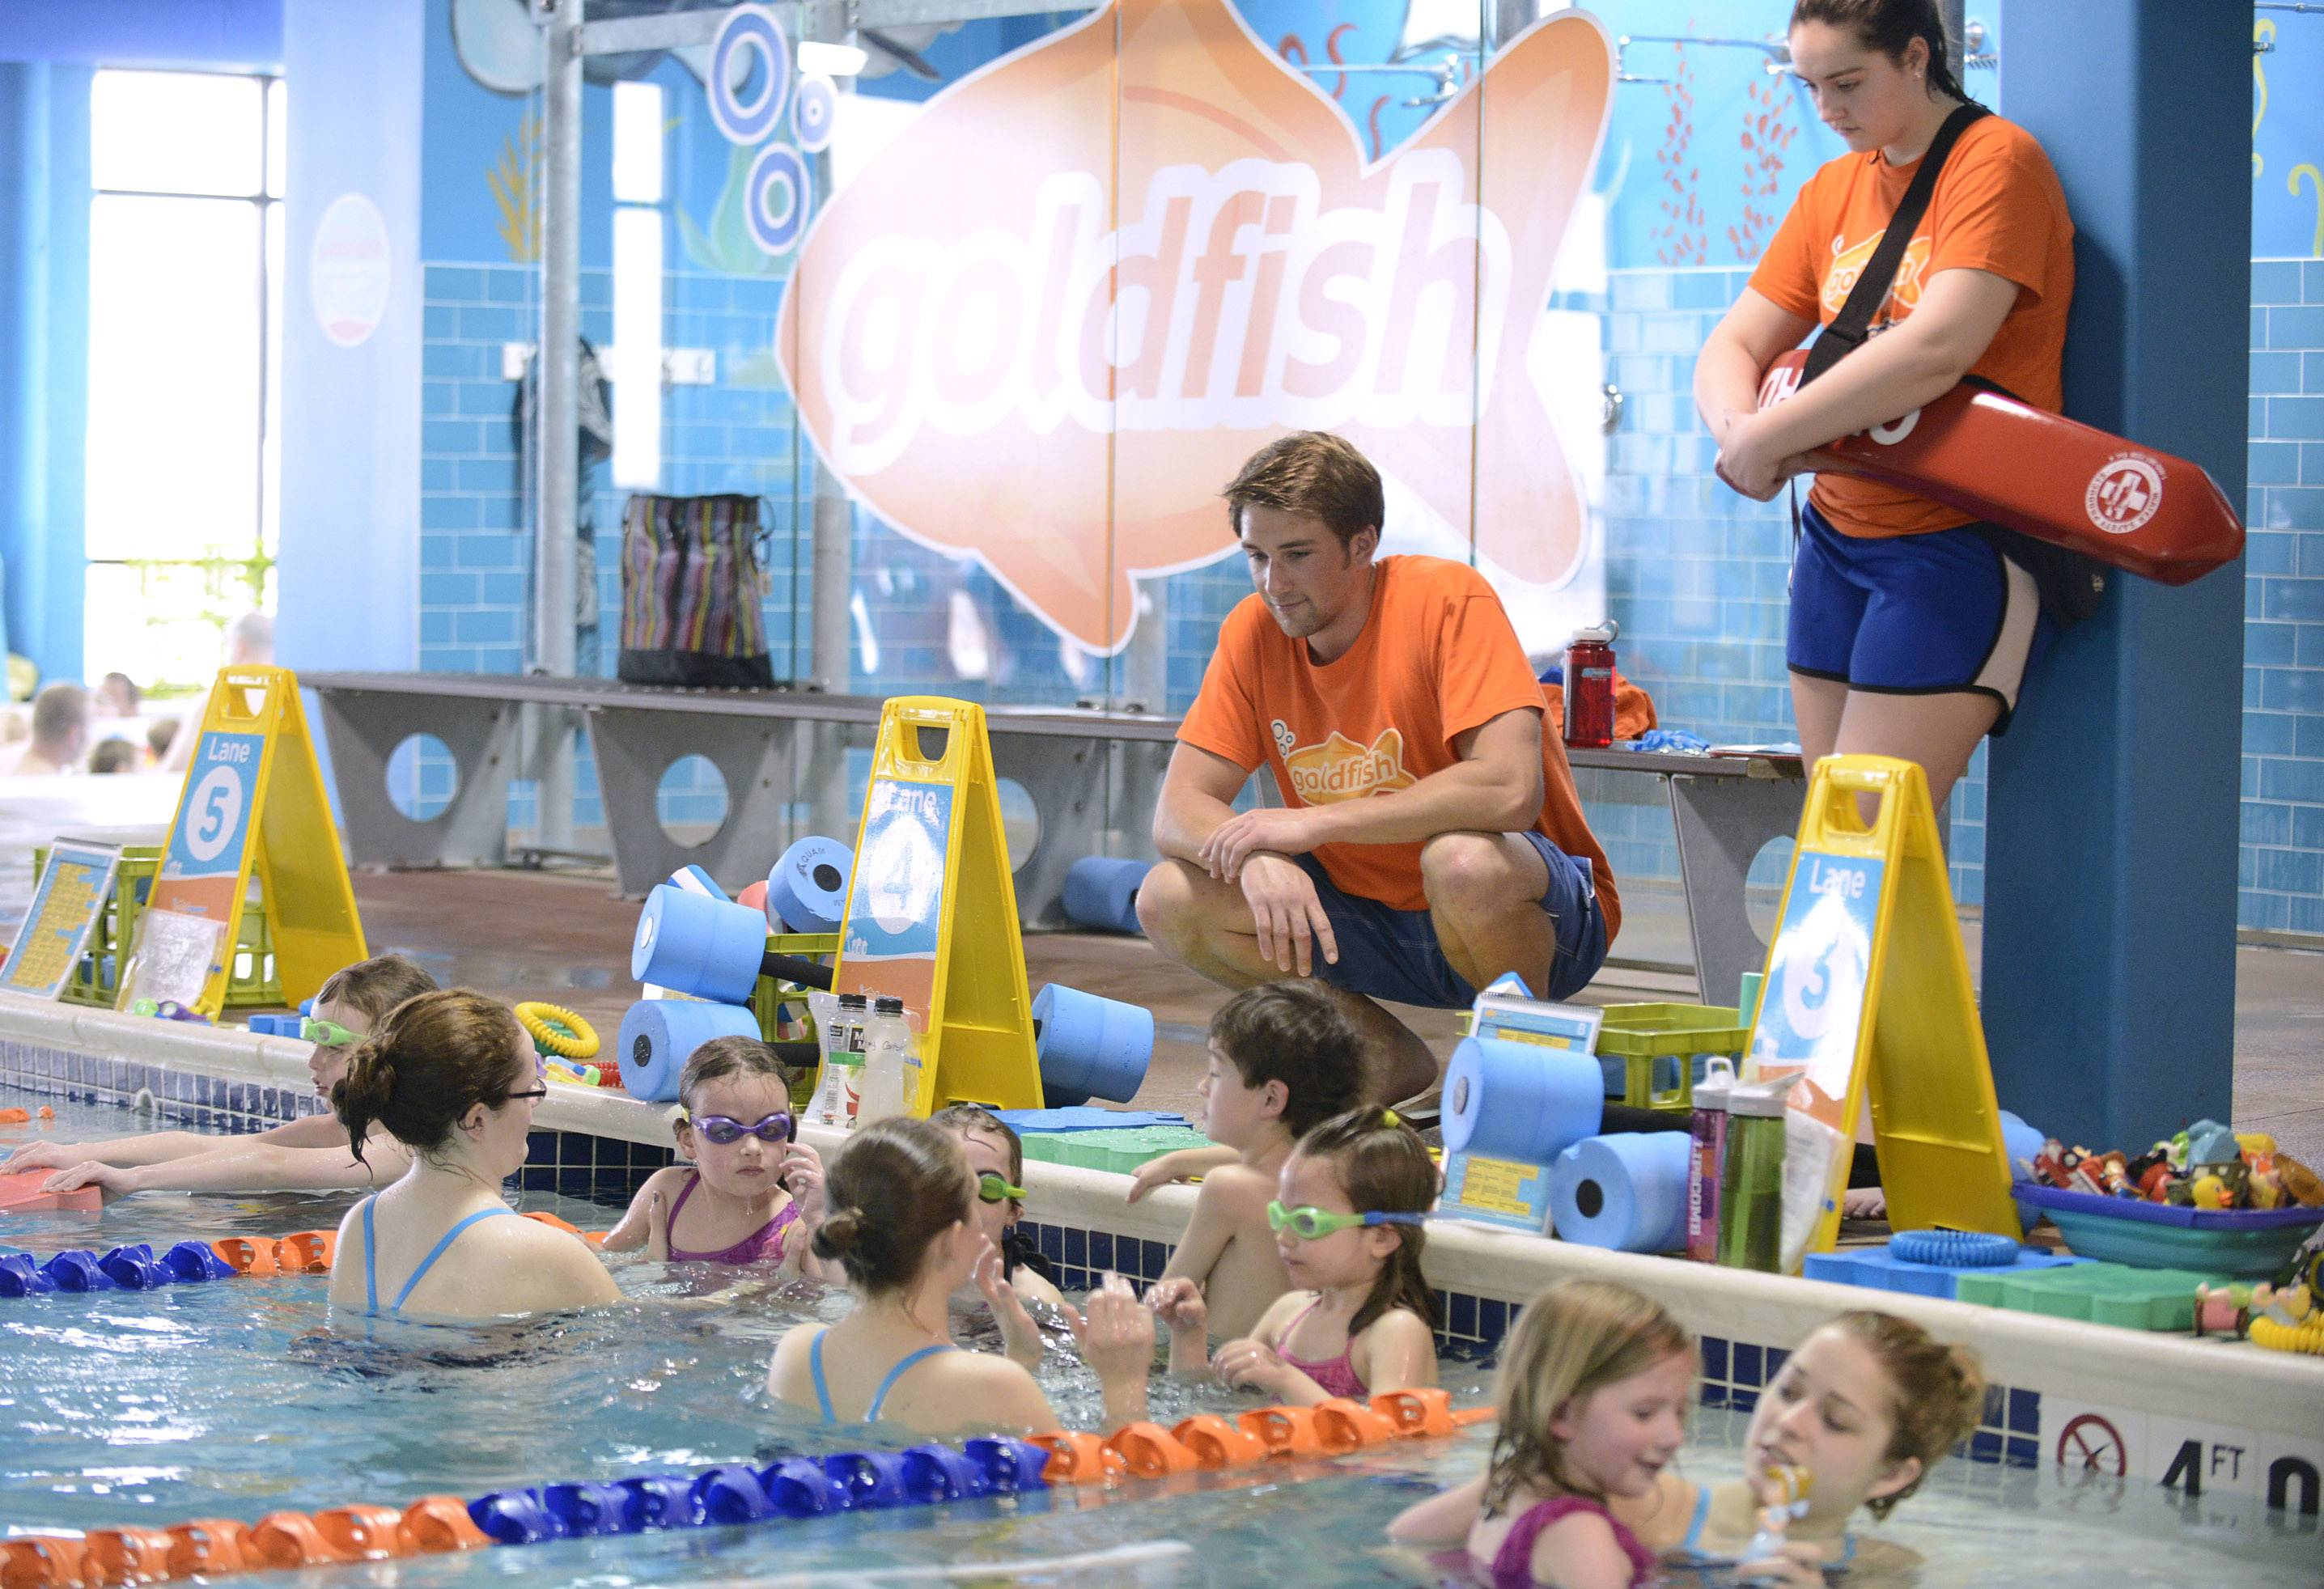 Goldfish Swim School owner Alex Tyler, squatting, chats with students and instructors during Saturday morning classes the St. Charles school.